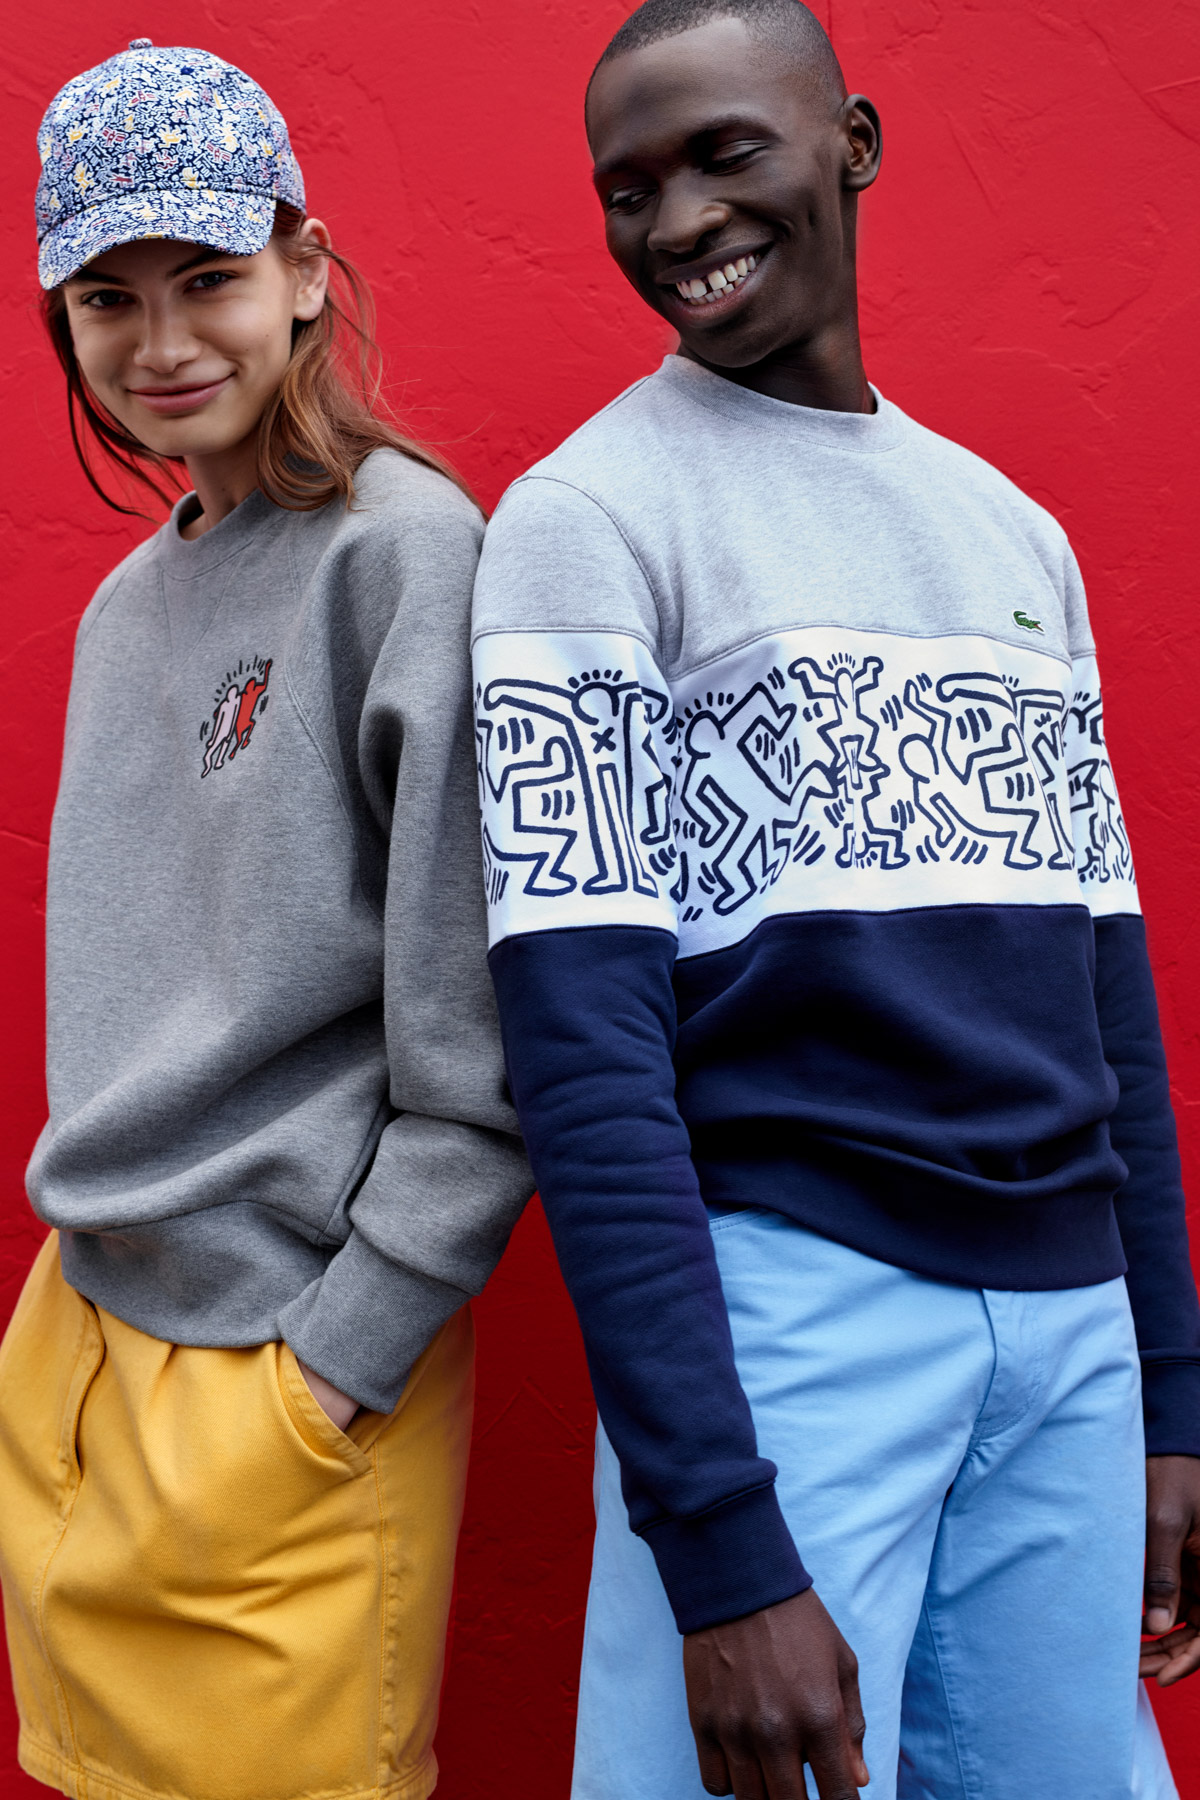 03_LACOSTE X KEITH HARING_.jpg